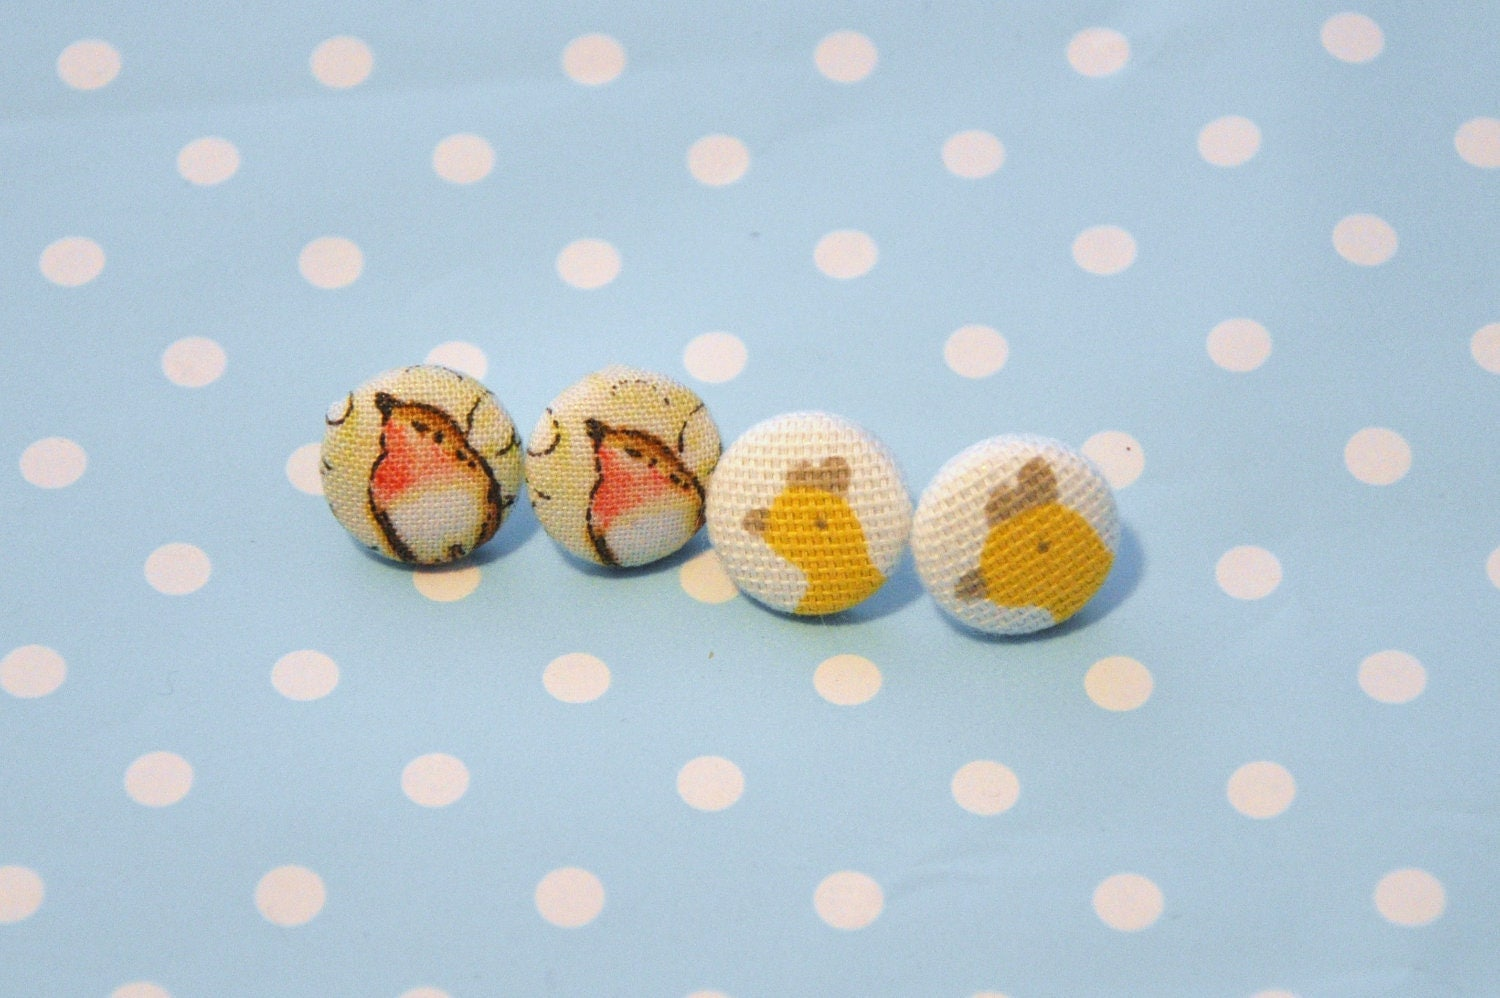 Robin & Chicken Earrings - Cute, Pretty Fabric Bird Stud Earrings - Perfect Jewellery / Jewelry Gift - Under 10 pounds